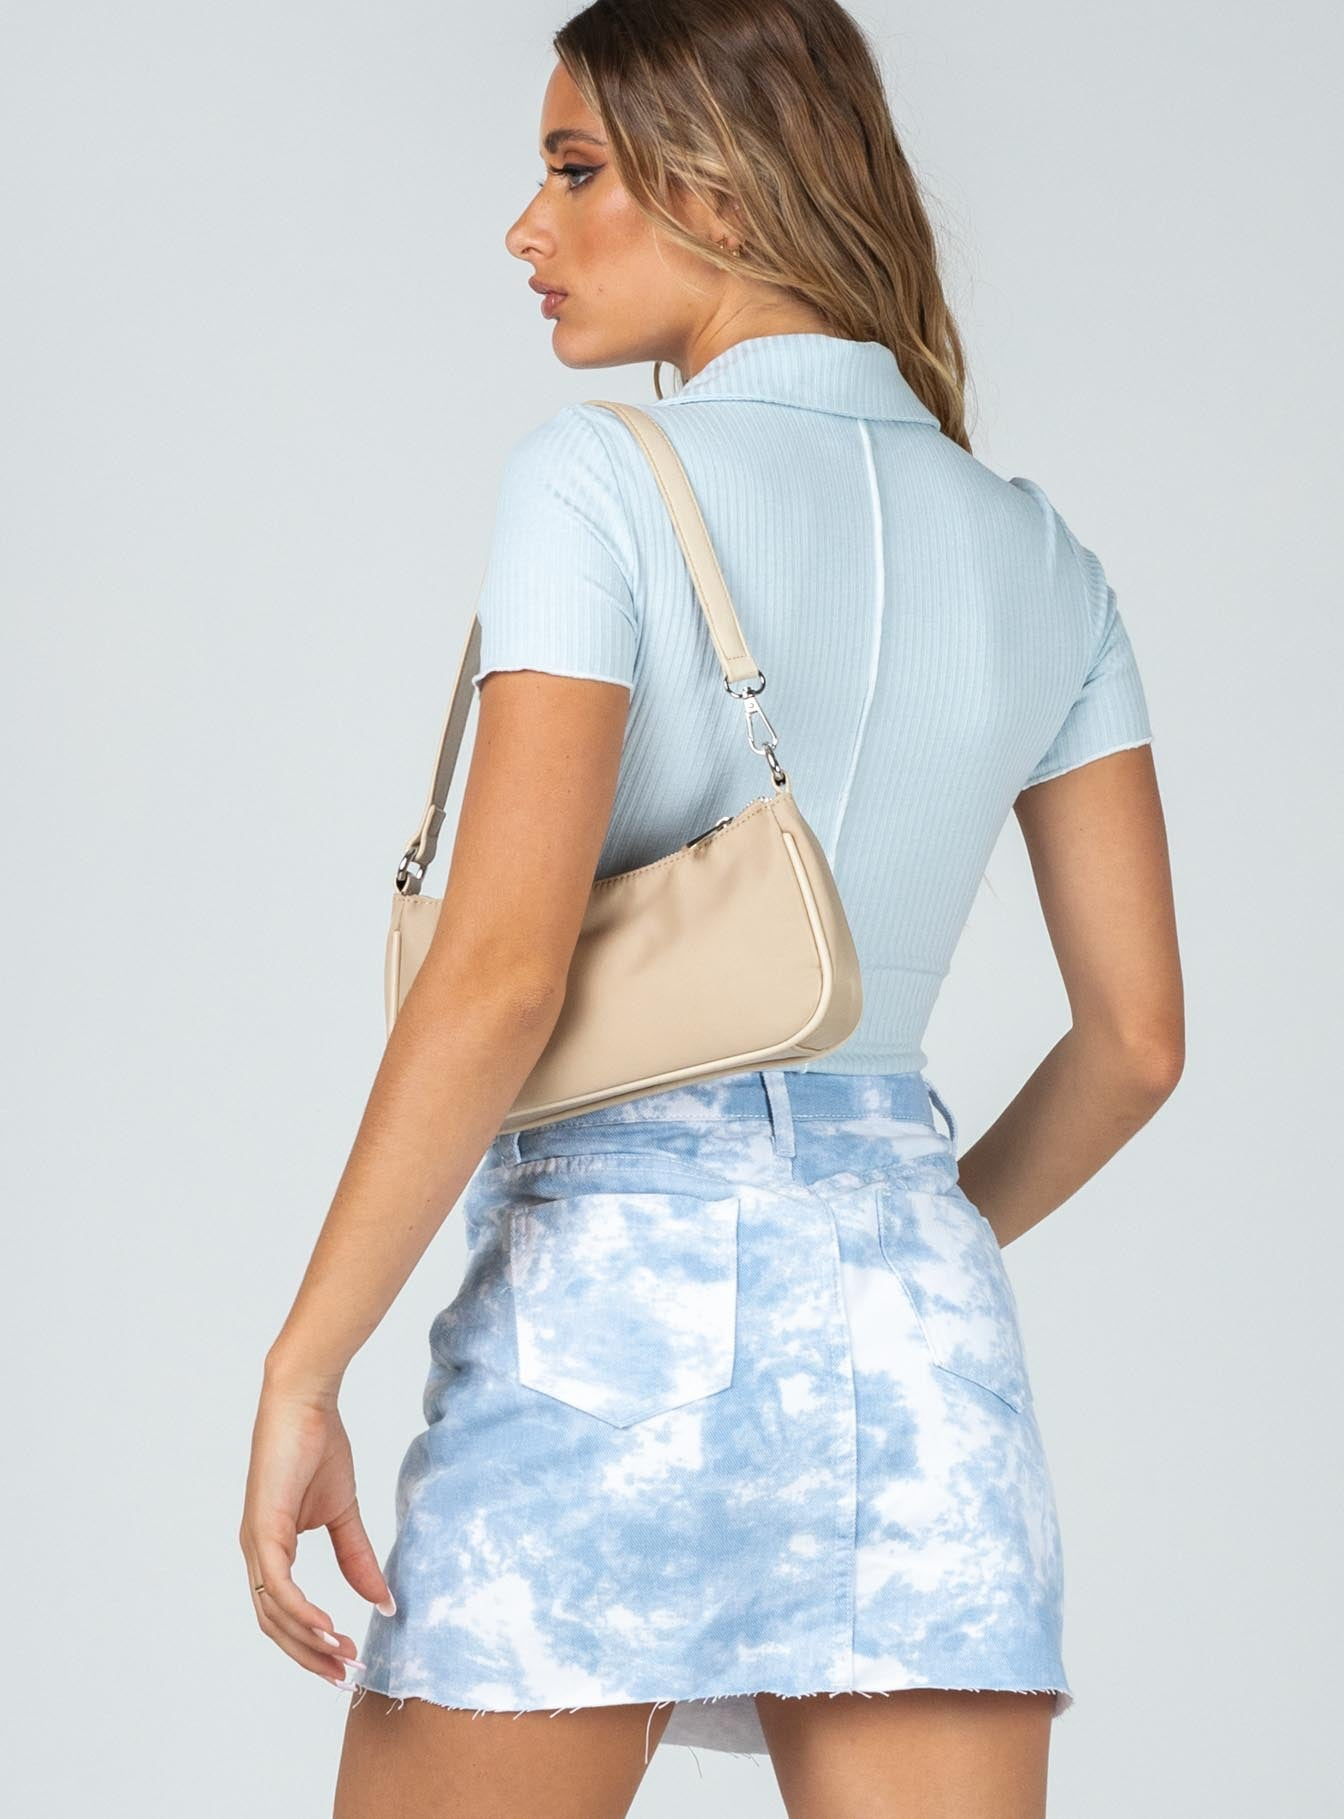 Up In The Clouds Denim Mini Skirt